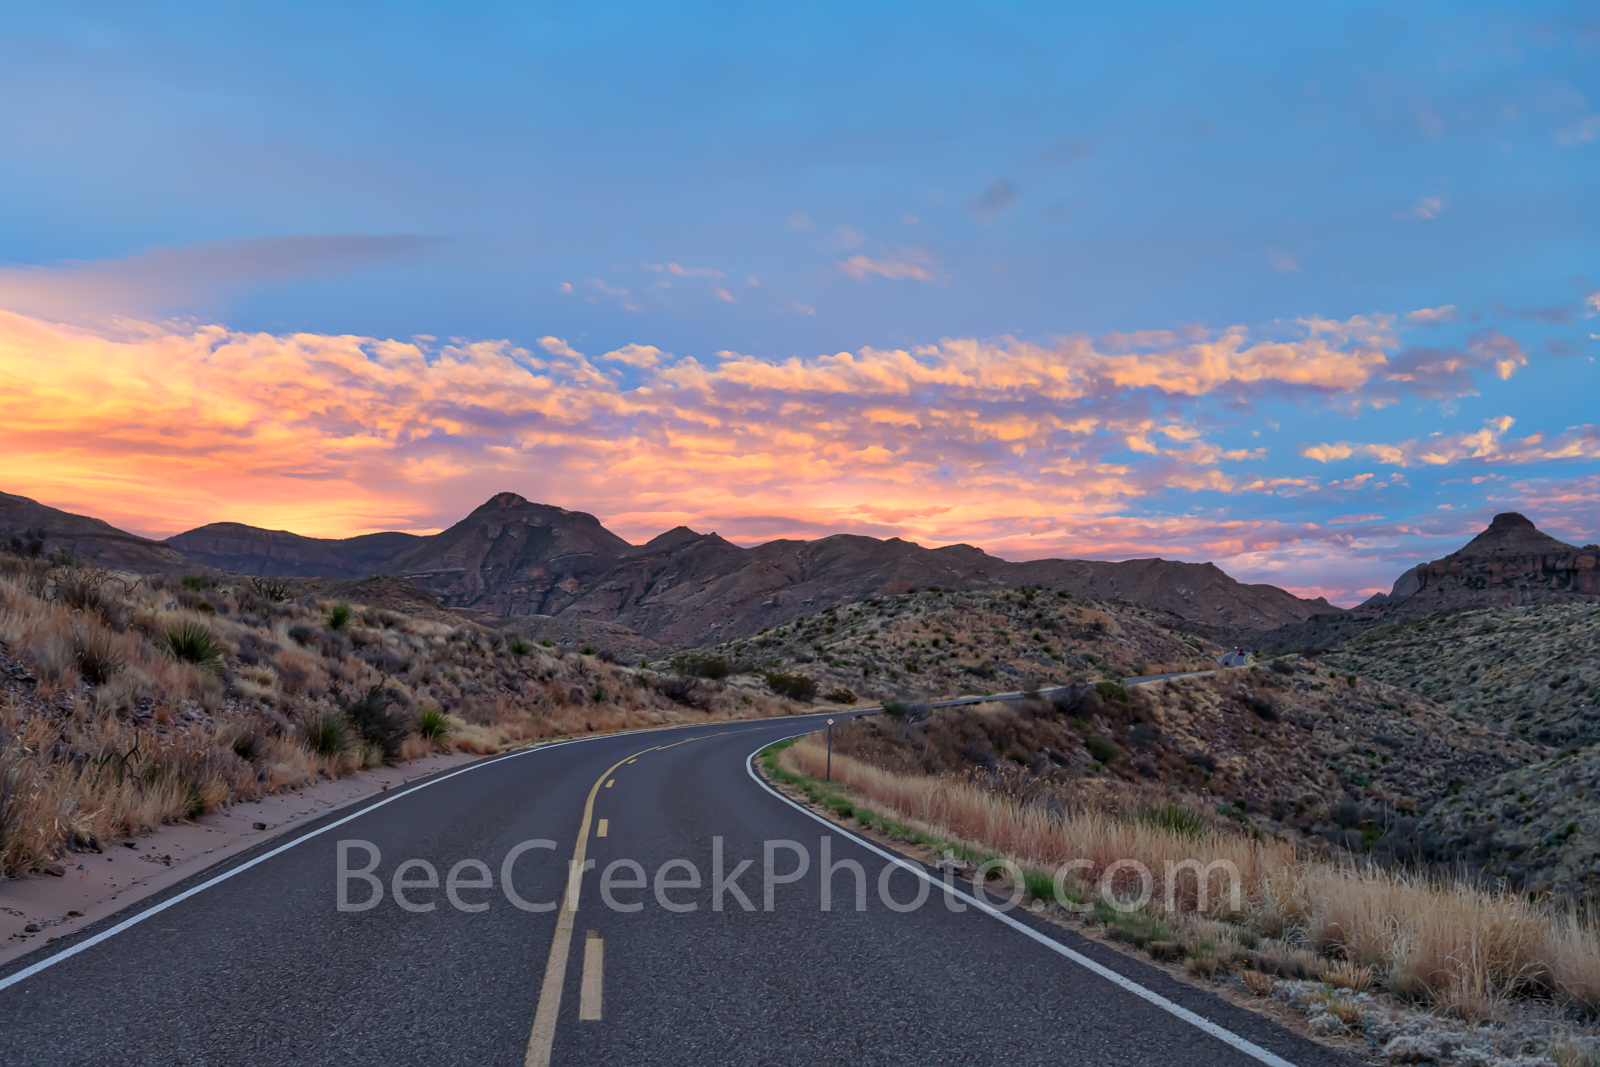 Chisos Mountains, Sunset, clouds, Ross Maxwell Scenic Drive, Big bend national park, Texas landscape, road, Sunset at Ross Maxwell Scenic Drive, Big Bend, scenic drive,, photo